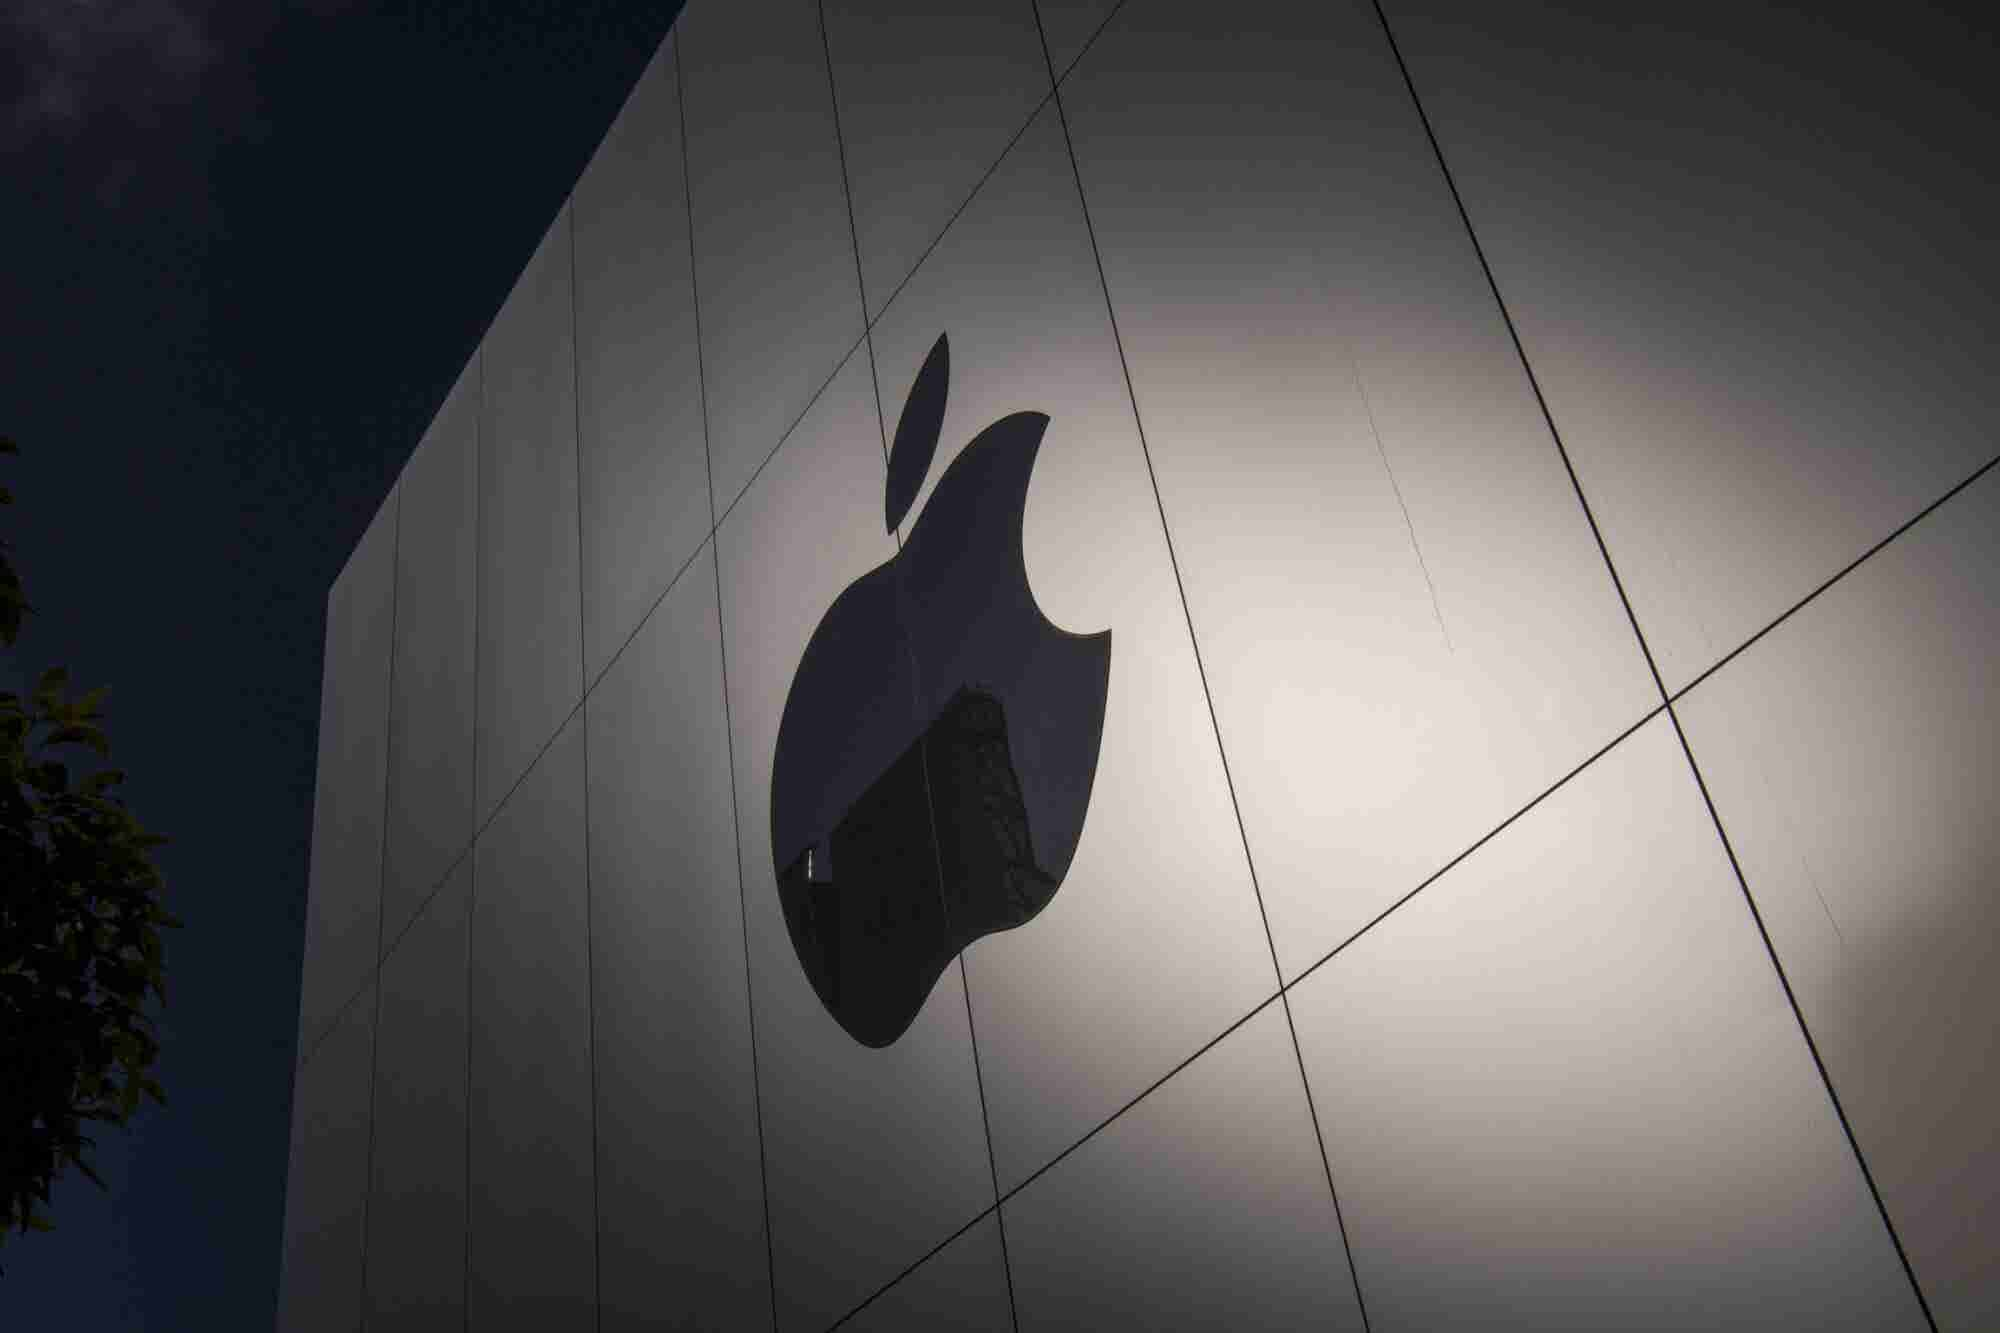 Apple Inches Closer to $1 Trillion Status: Here Are the Key Insights From This Quarter's Earnings Reports